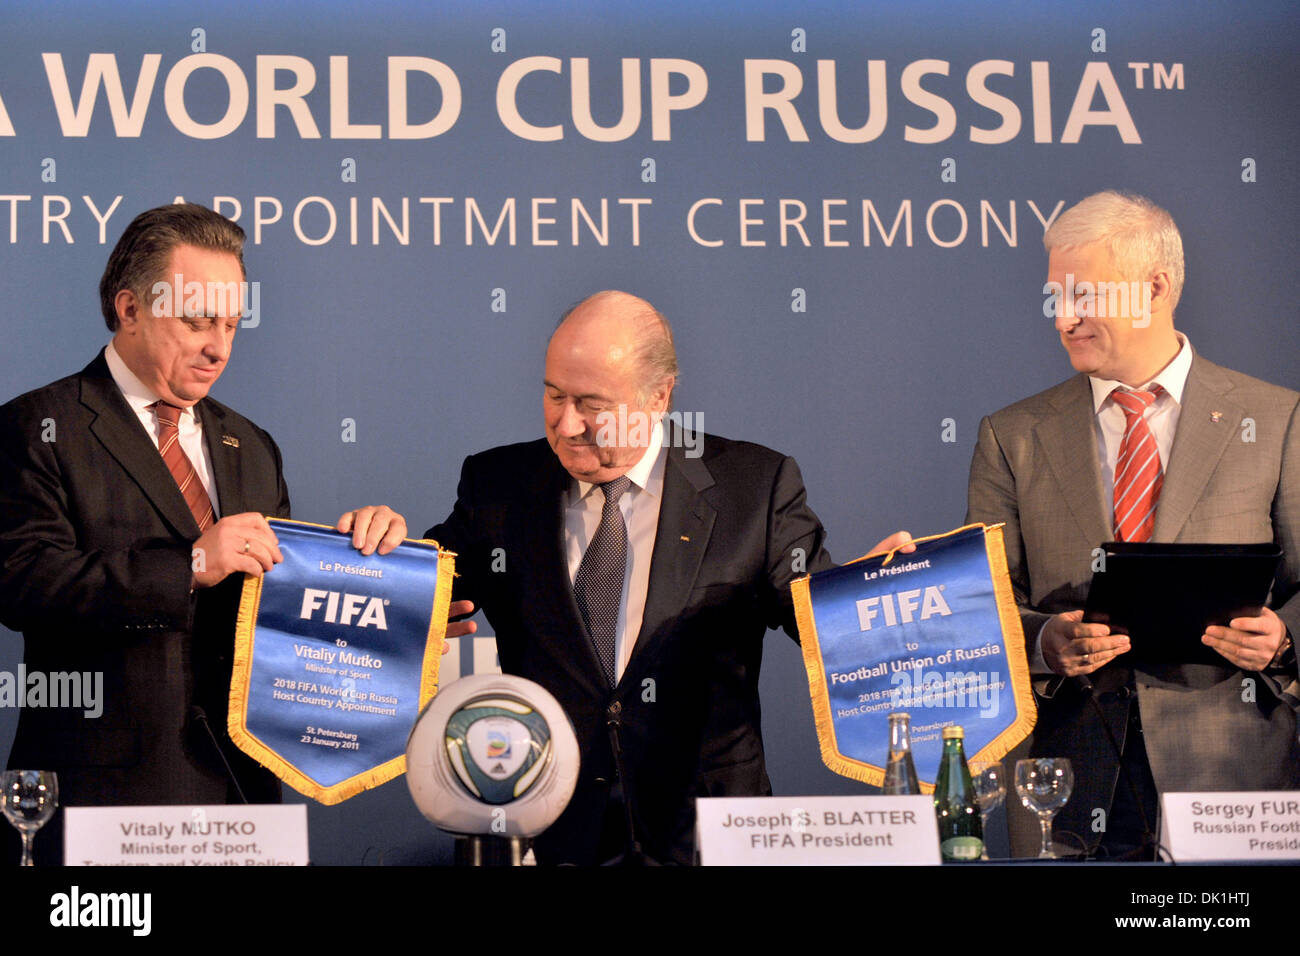 Jan 23, 2011 - St. Petersburg, Russia - FIFA president JOSEPH BLATTER (C) president of Russian Football Union SERGEI FURSENKO (R) and VITALY MUTKO (L) Minister of Sport of Russia at the host country appointment ceremony in Moscow as Russia will host the 2018 World Cup. (Credit Image: © PhotoXpress/ZUMAPRESS.com) - Stock Image